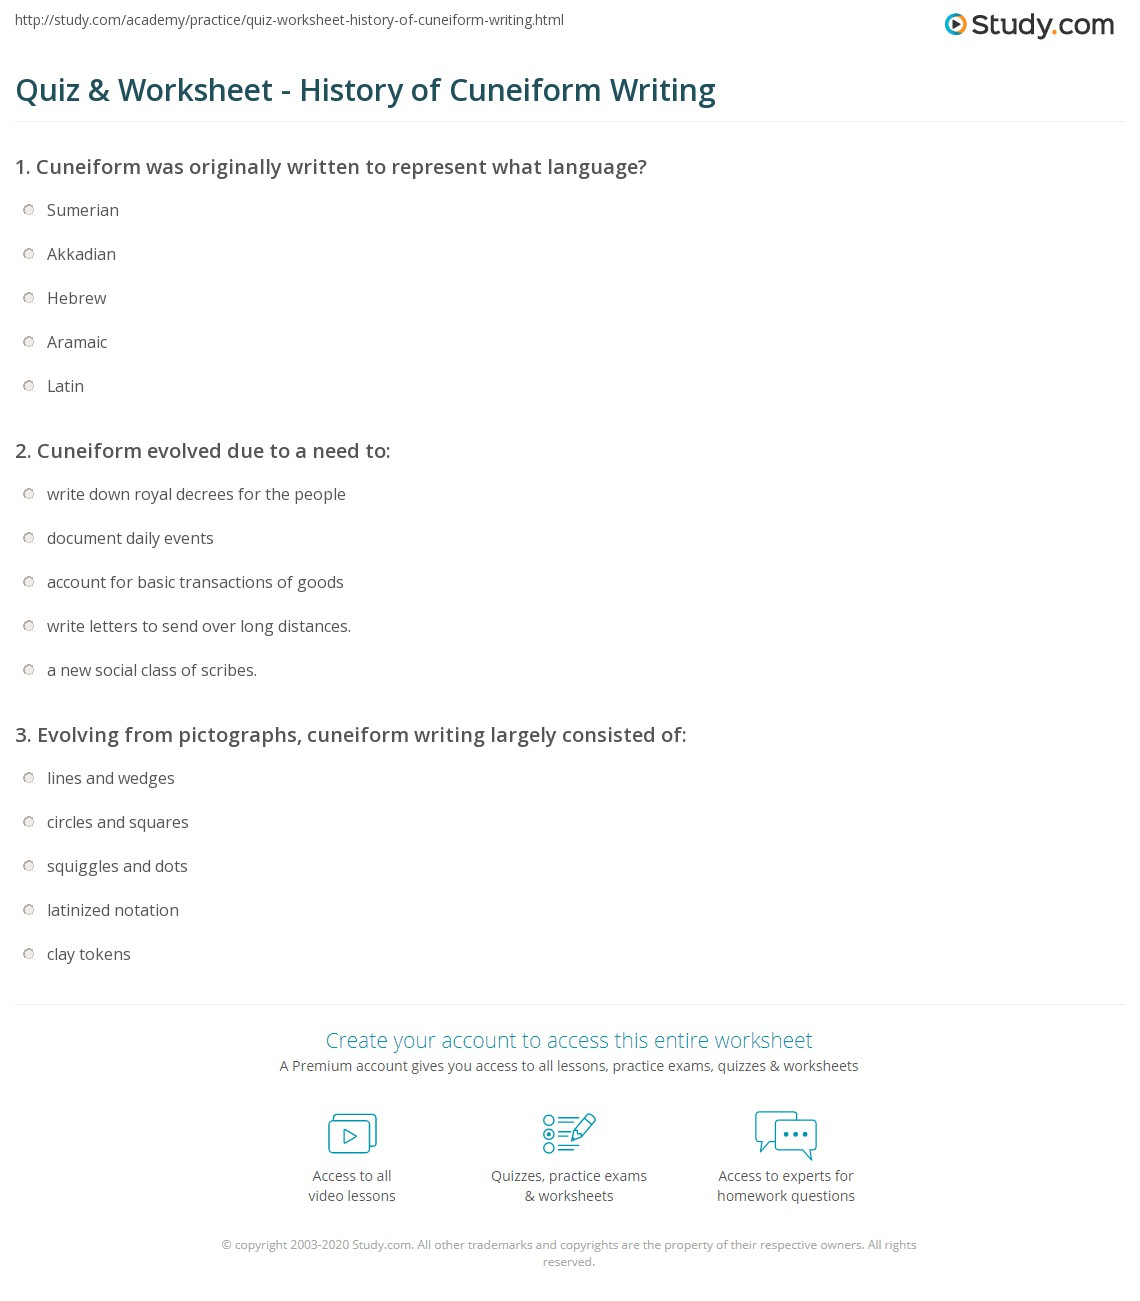 Weirdmailus  Pretty Quiz Amp Worksheet  History Of Cuneiform Writing  Studycom With Magnificent Print Cuneiform Writing Definition Symbols Amp History Worksheet With Delightful Th Grade Exponents Worksheets Also Worksheet Number  In Addition Chemistry  Worksheets And Freedom Writers Worksheets As Well As Mixed Times Tables Worksheet Additionally Camera Angles Worksheet From Studycom With Weirdmailus  Magnificent Quiz Amp Worksheet  History Of Cuneiform Writing  Studycom With Delightful Print Cuneiform Writing Definition Symbols Amp History Worksheet And Pretty Th Grade Exponents Worksheets Also Worksheet Number  In Addition Chemistry  Worksheets From Studycom